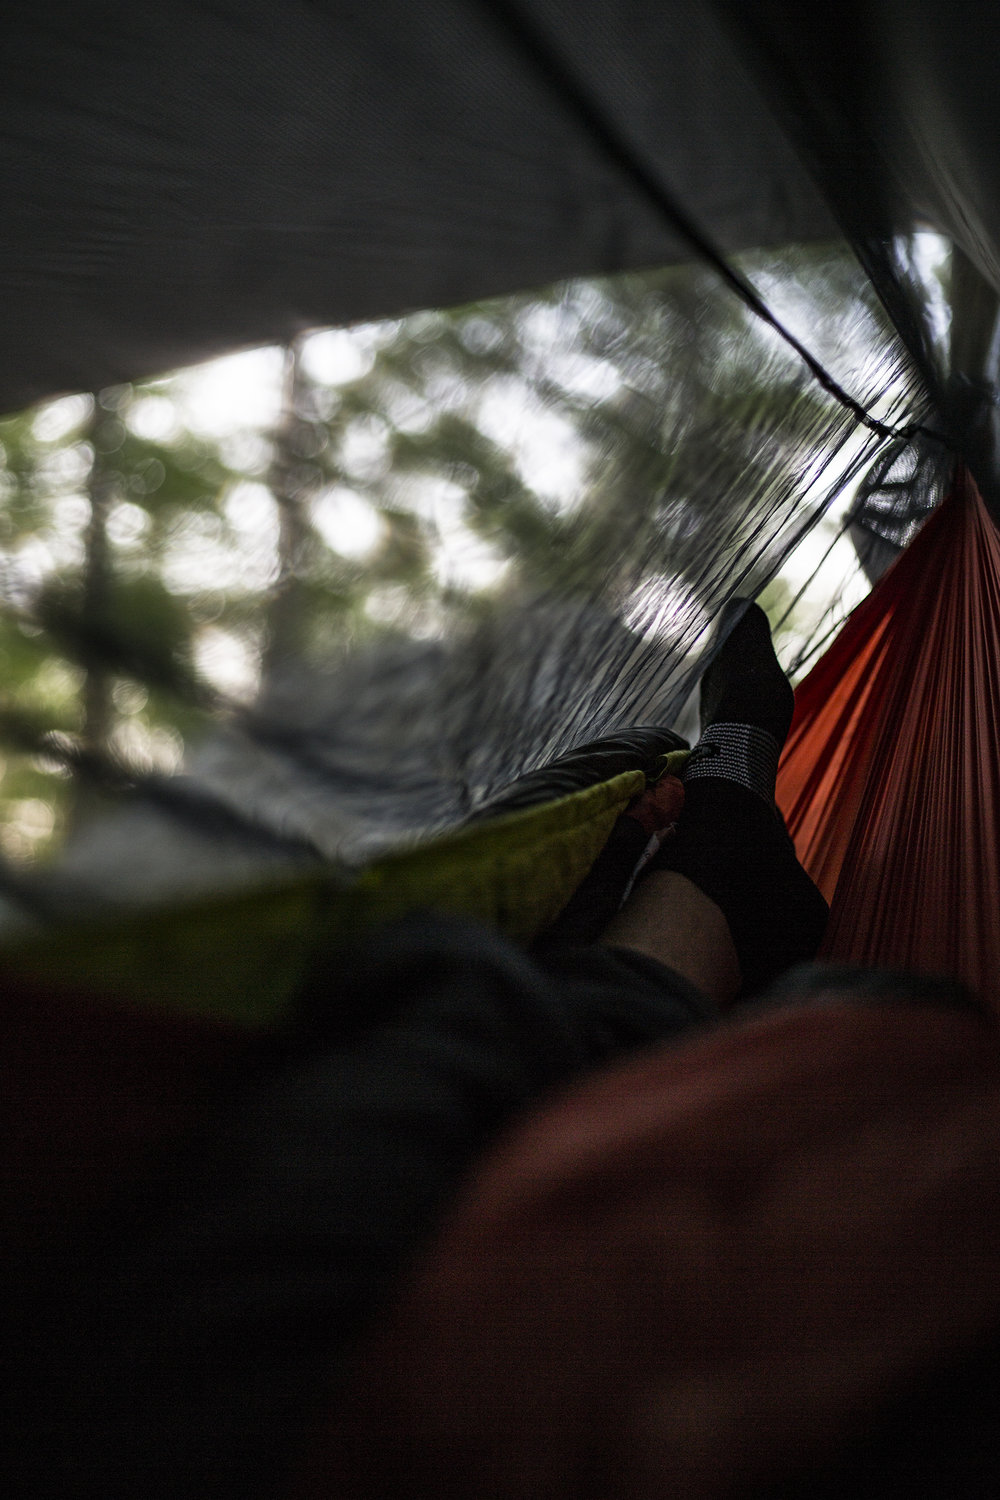 Sleepy morning hammock views.